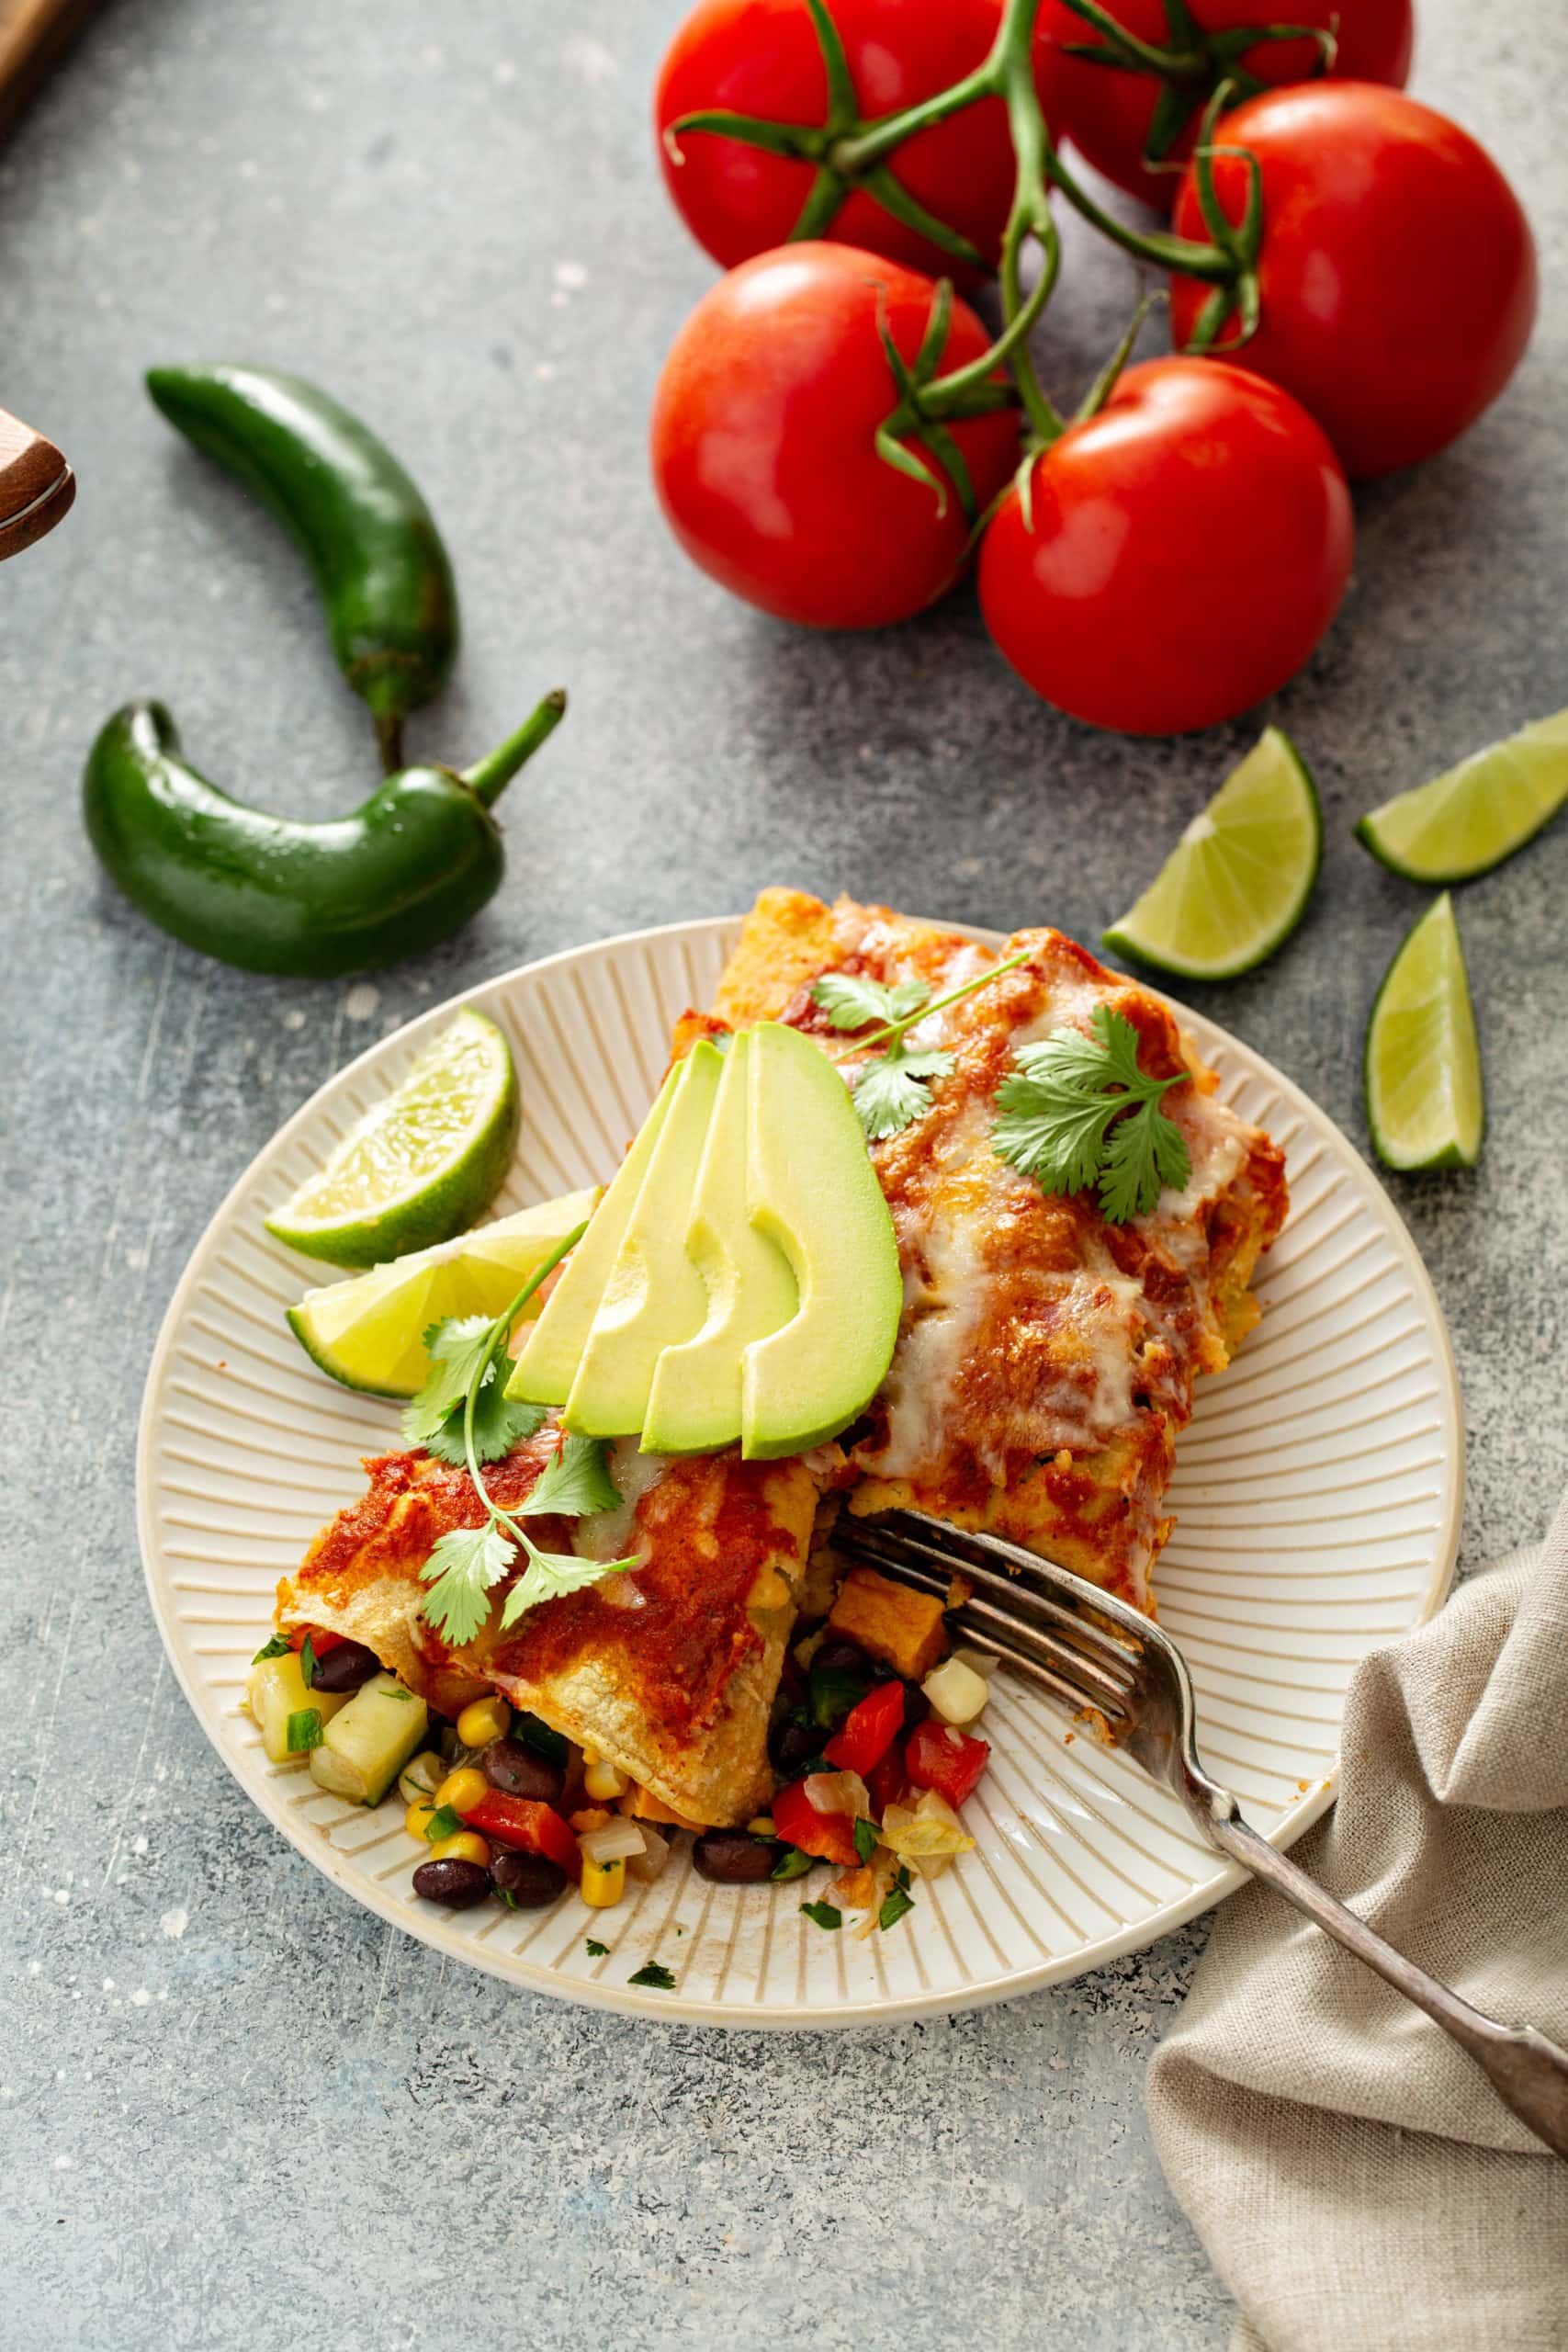 Vegetarian enchiladas on a white dinner plate. They are topped with sliced avocados and cilantro leaves. There are some green chilies , lime wedges, and tomatoes in the background. There is a fork on the plate.